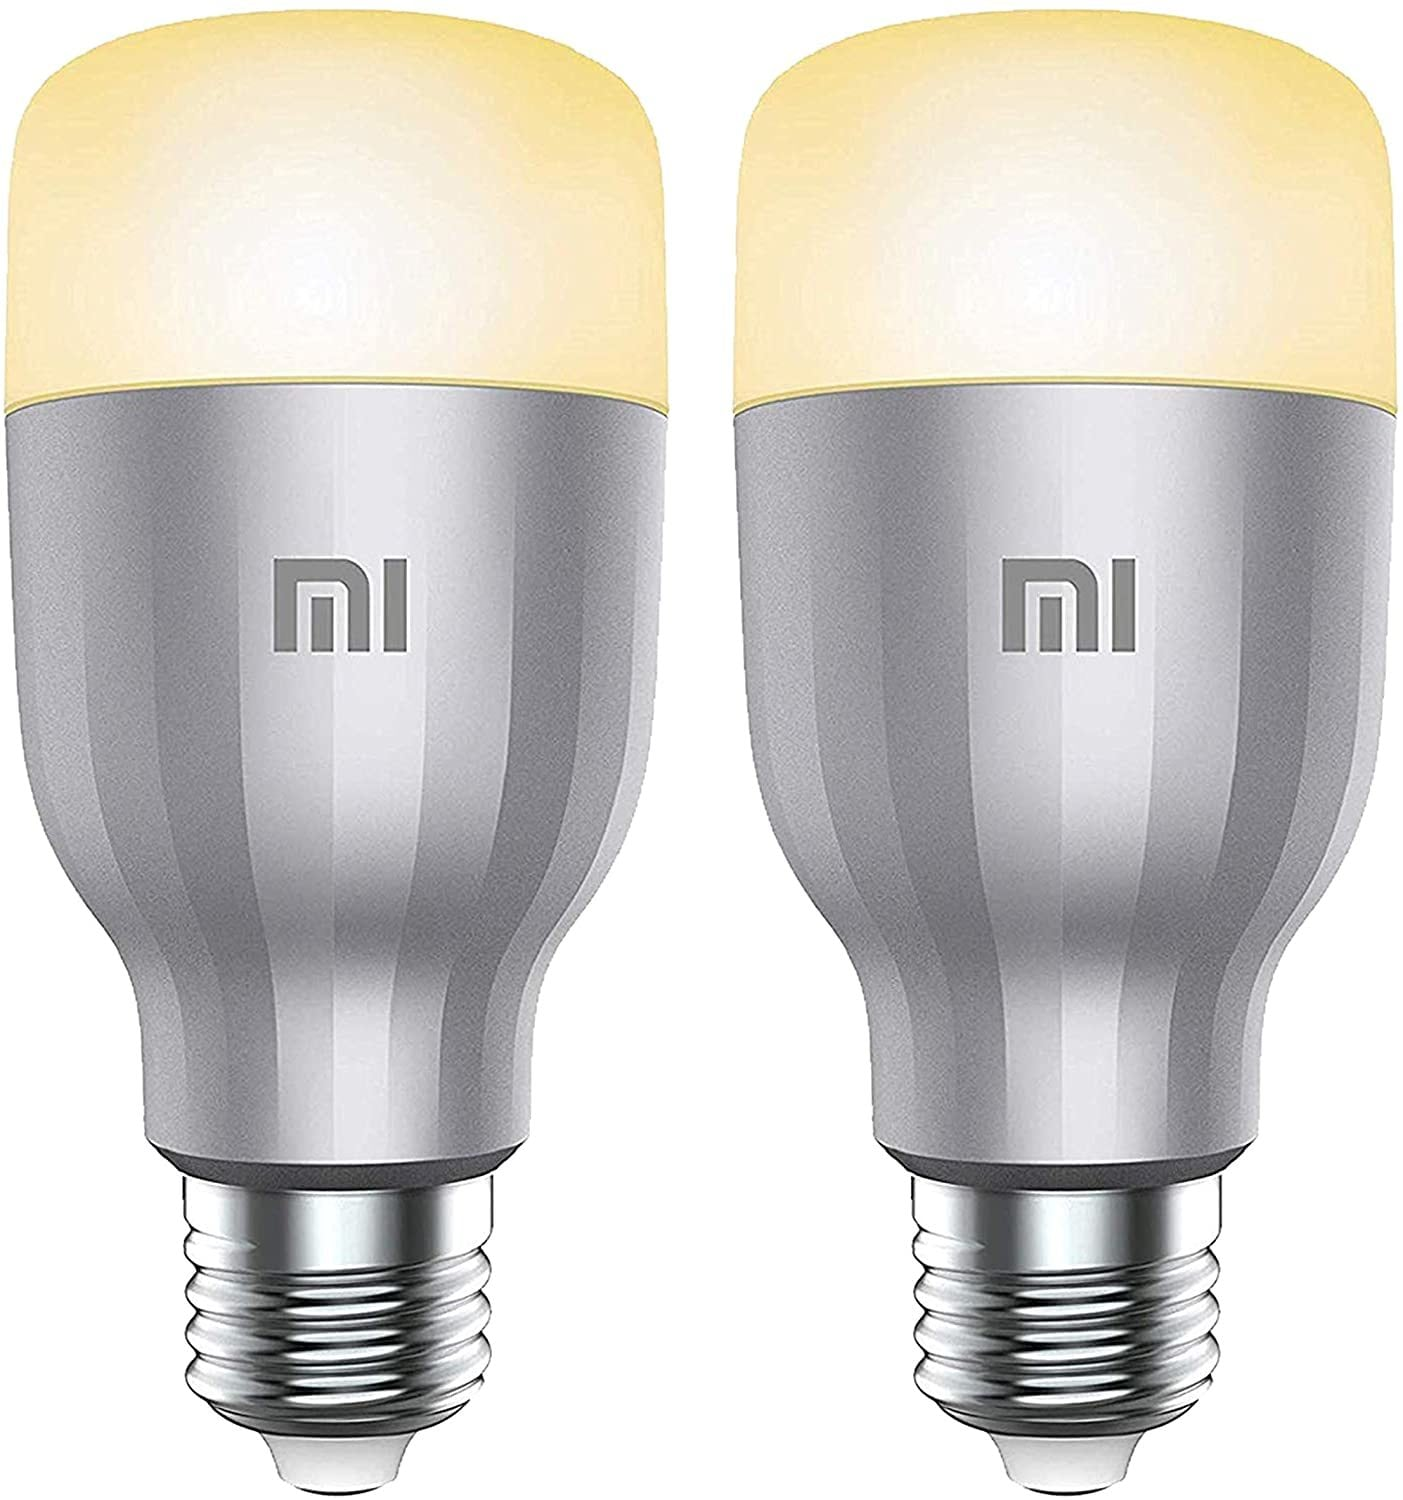 Buy Xiaomi 2pcs Package Global Version Xiaomi Mi Smart Led Bulb Colorful 800 Lumens 10w E27 Lamp Online Shop Home And Garden On Carrefour Uae